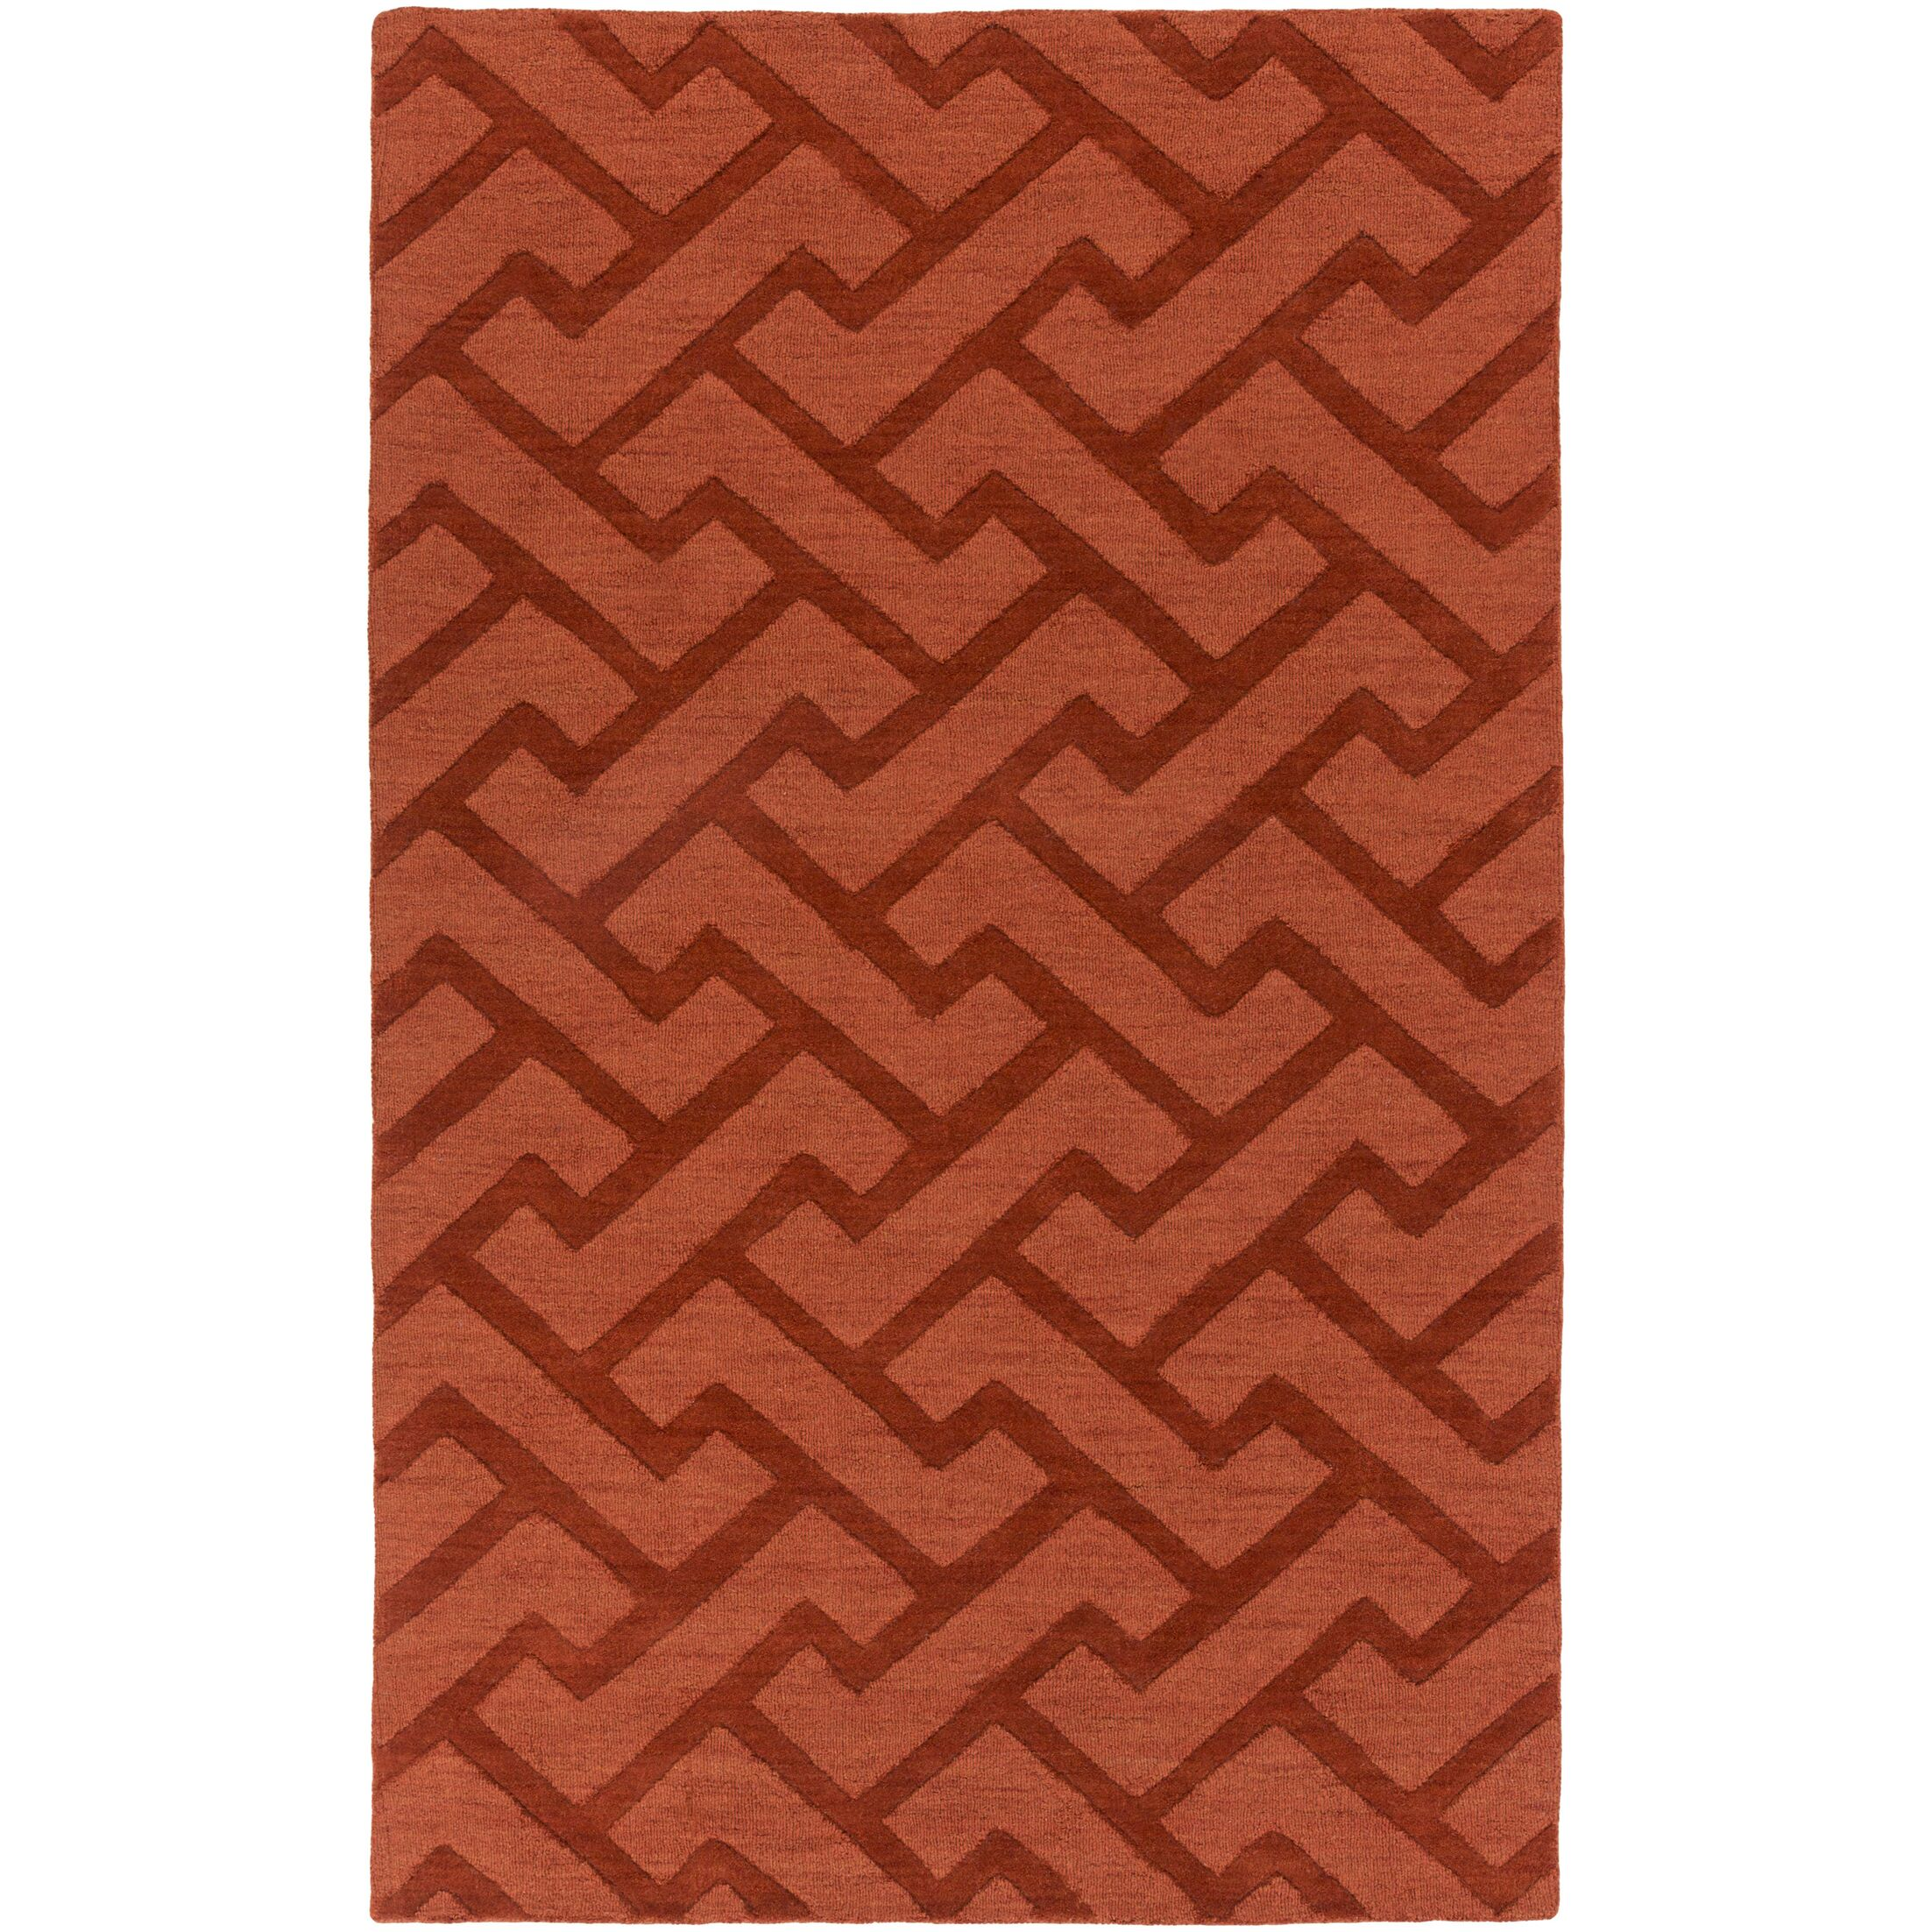 Villegas Hand-Loomed Dark Red Area Rug Rug Size: Rectangle 8' x 11'